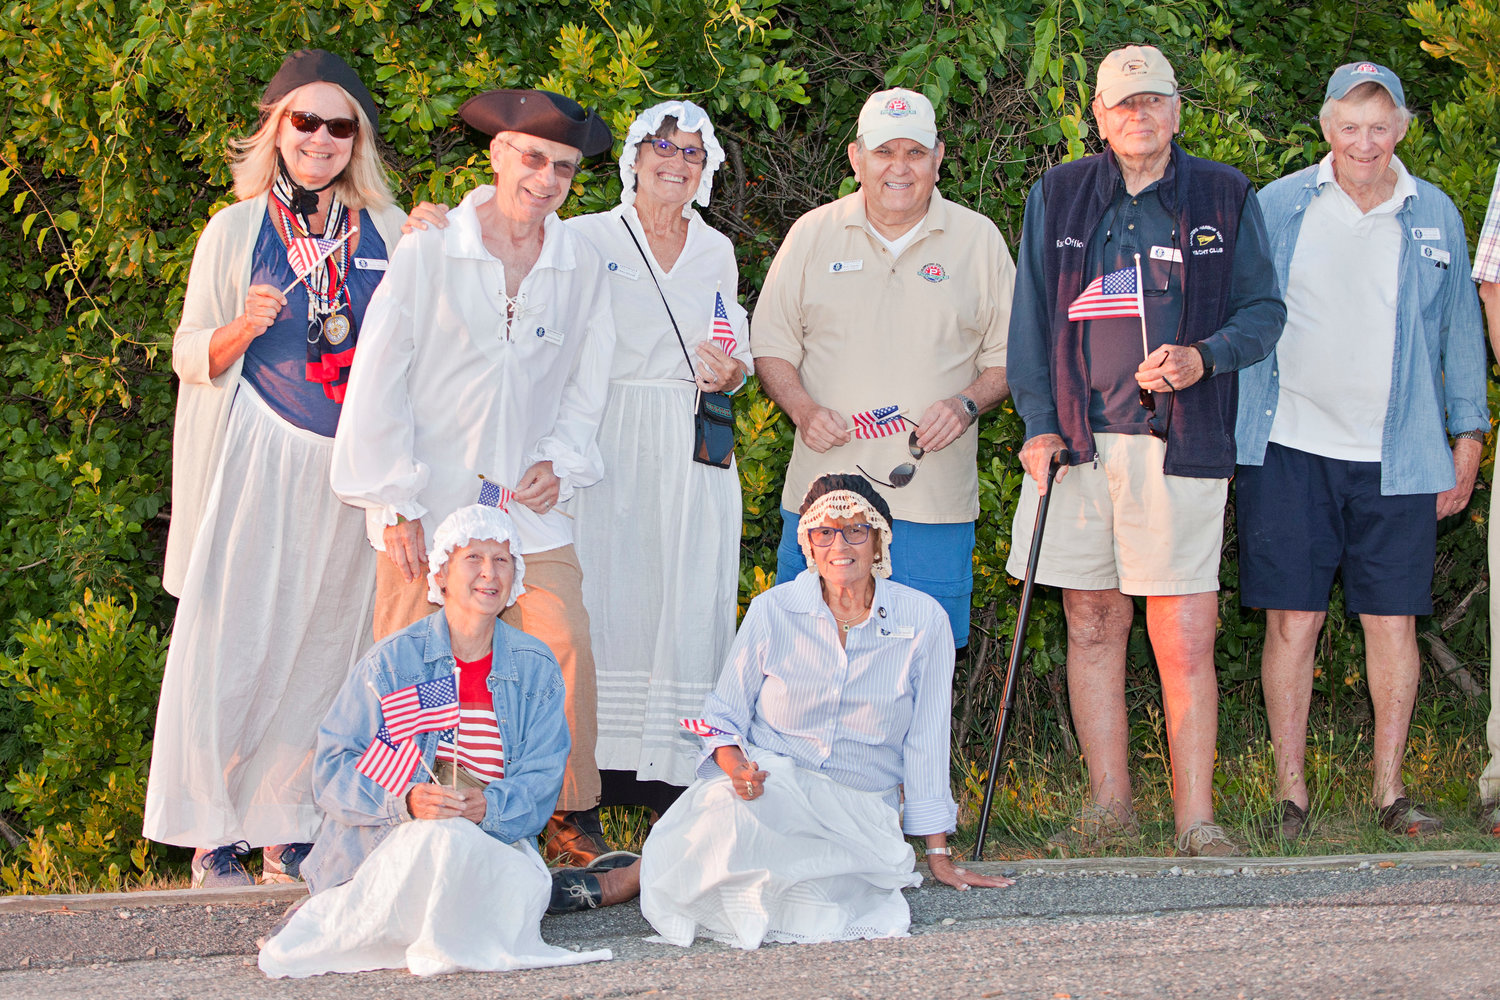 Members of the Portsmouth Historical Society pose for a photo while waiting for paddlers to arrive at Weaver Cove by kayak in July 2018. The group was retracing the route used by Colonial soldiers in a stealth (and mostly forgotten) mission during the Revolutionary War in 1777. Kayakers plan on doing it again on Wednesday, July 24.